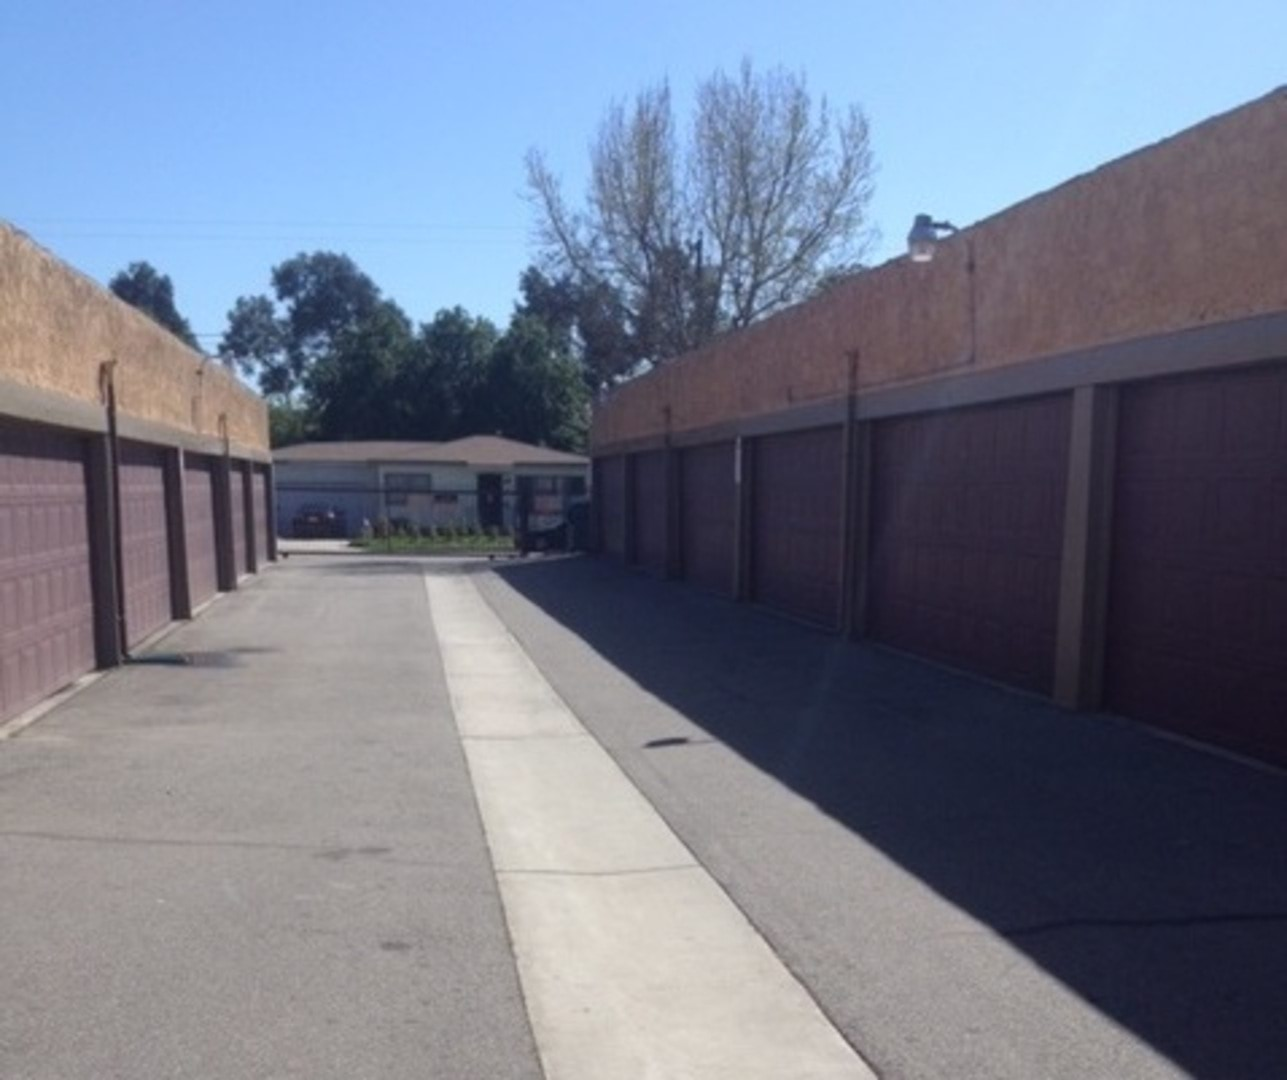 Apartments For Rent In Bellflower Ca: Park West Apartments Photo Gallery